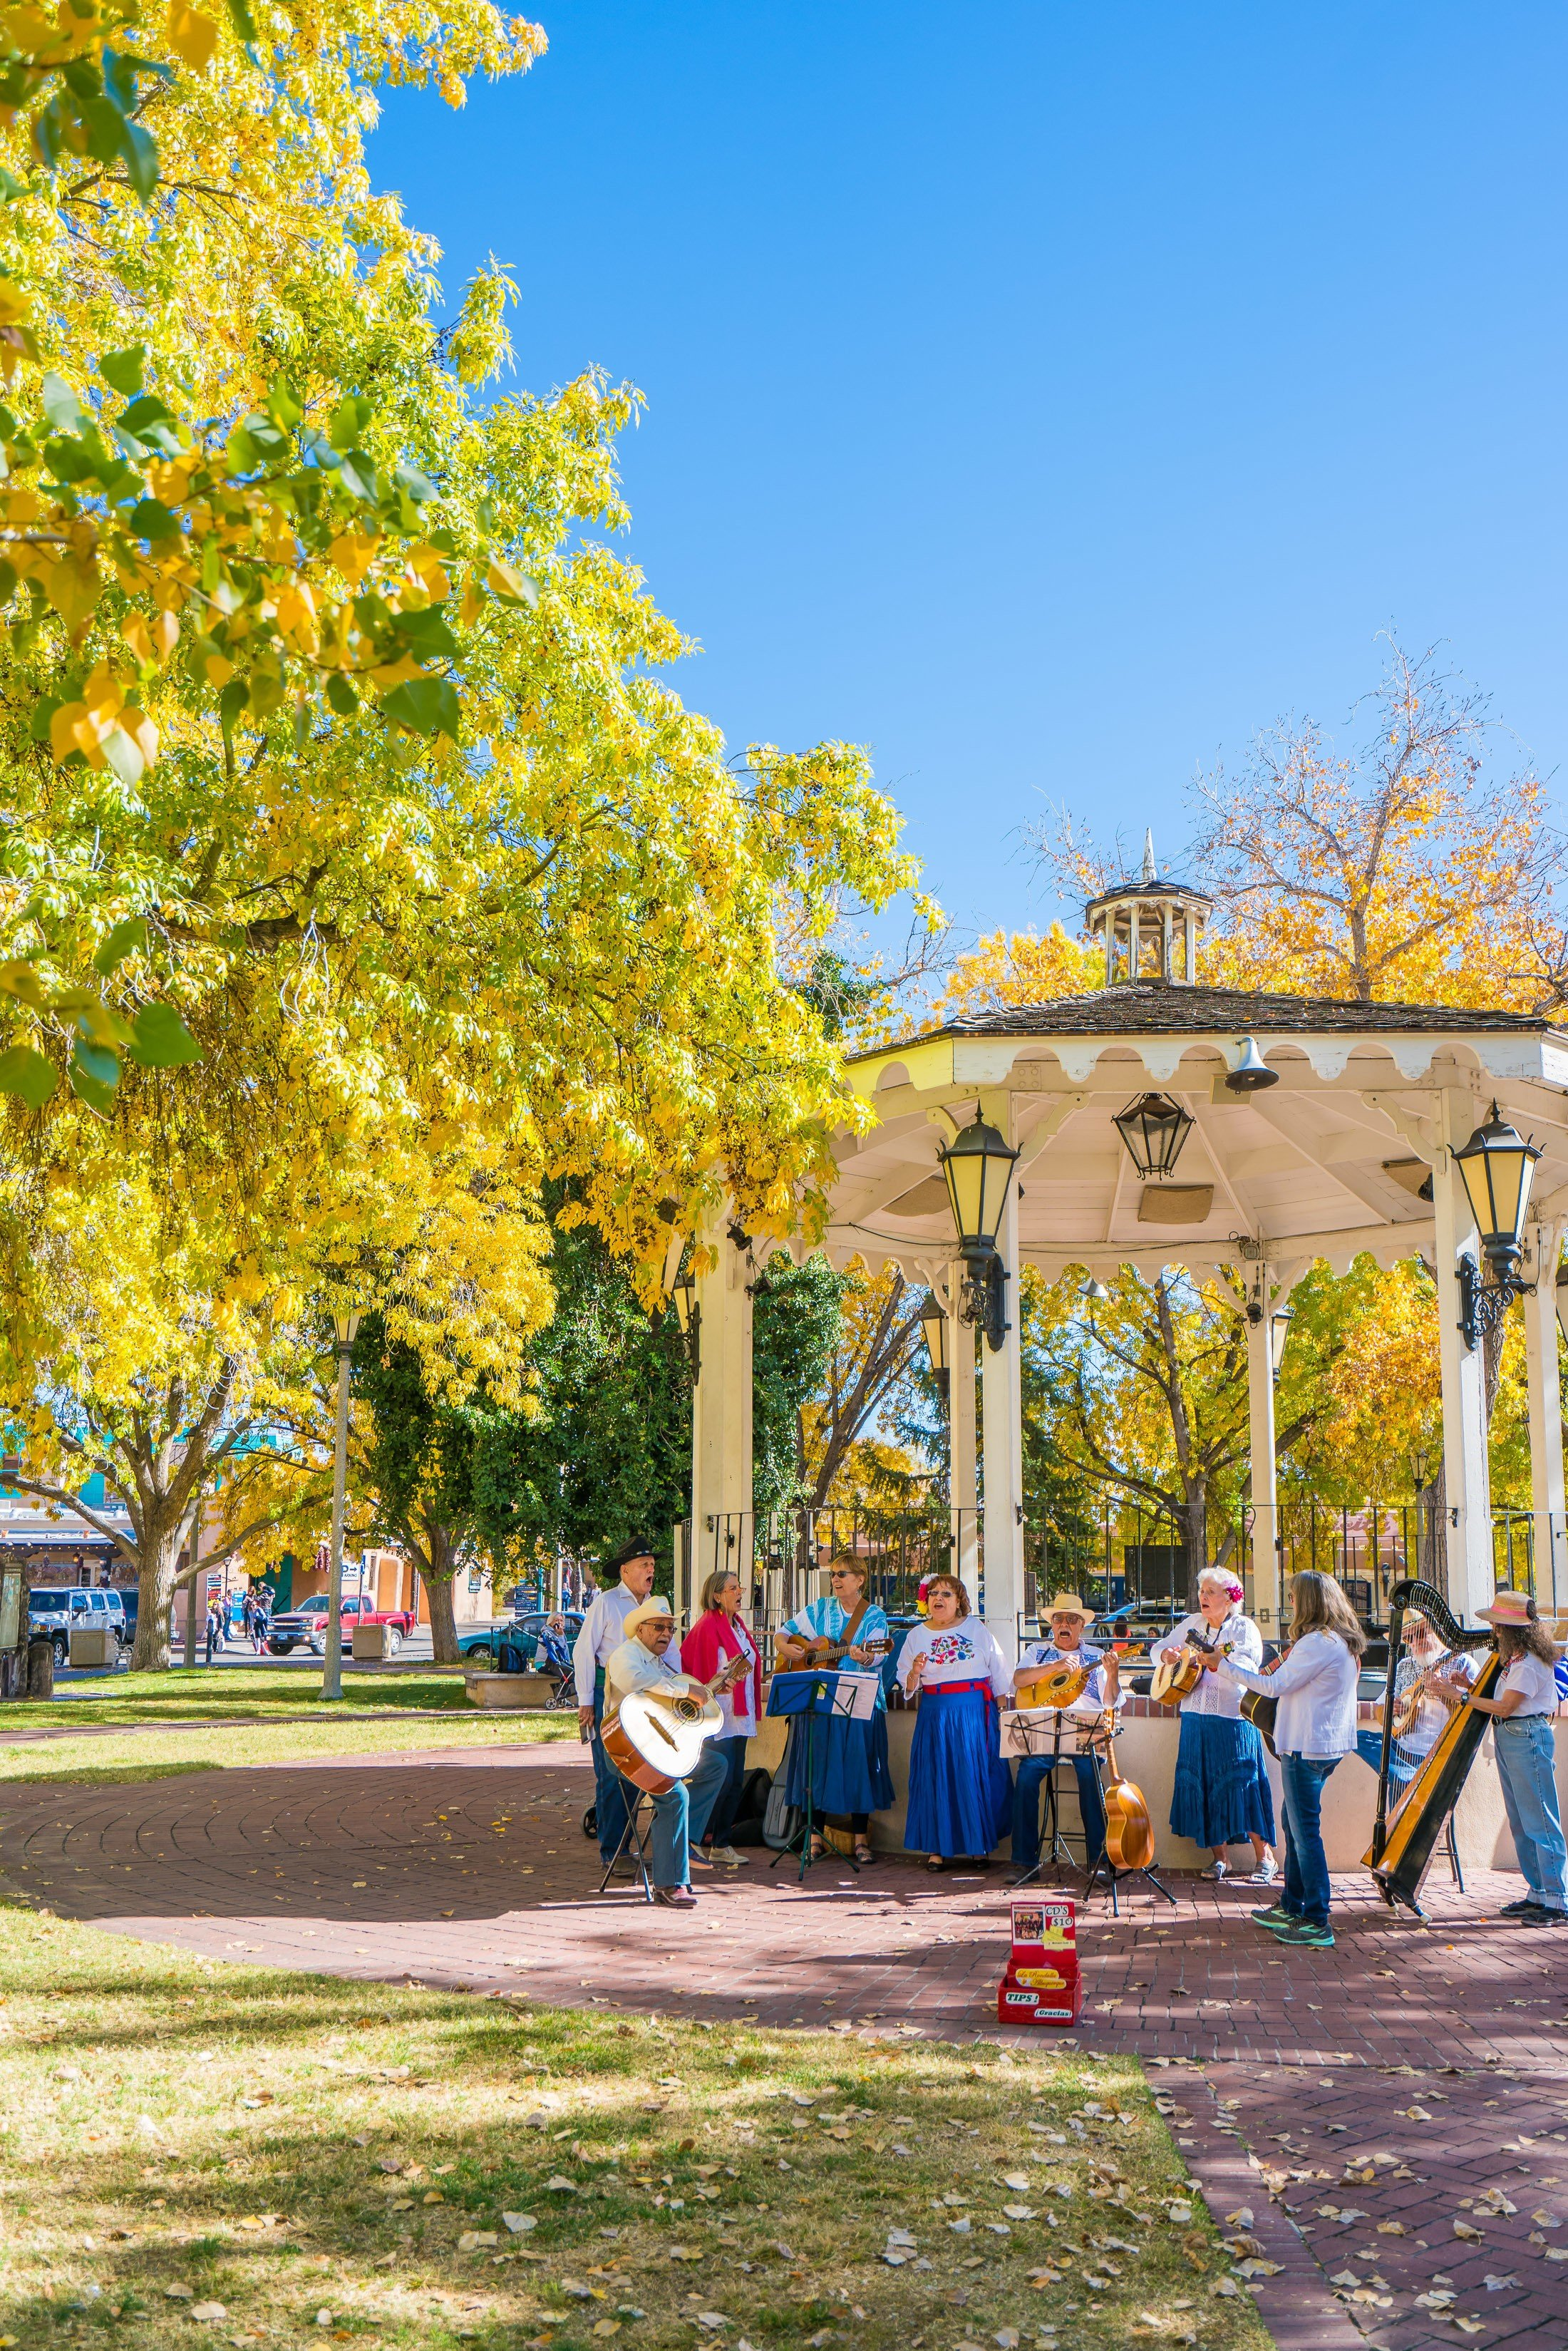 Live music in the square at Old Town Albuquerque.